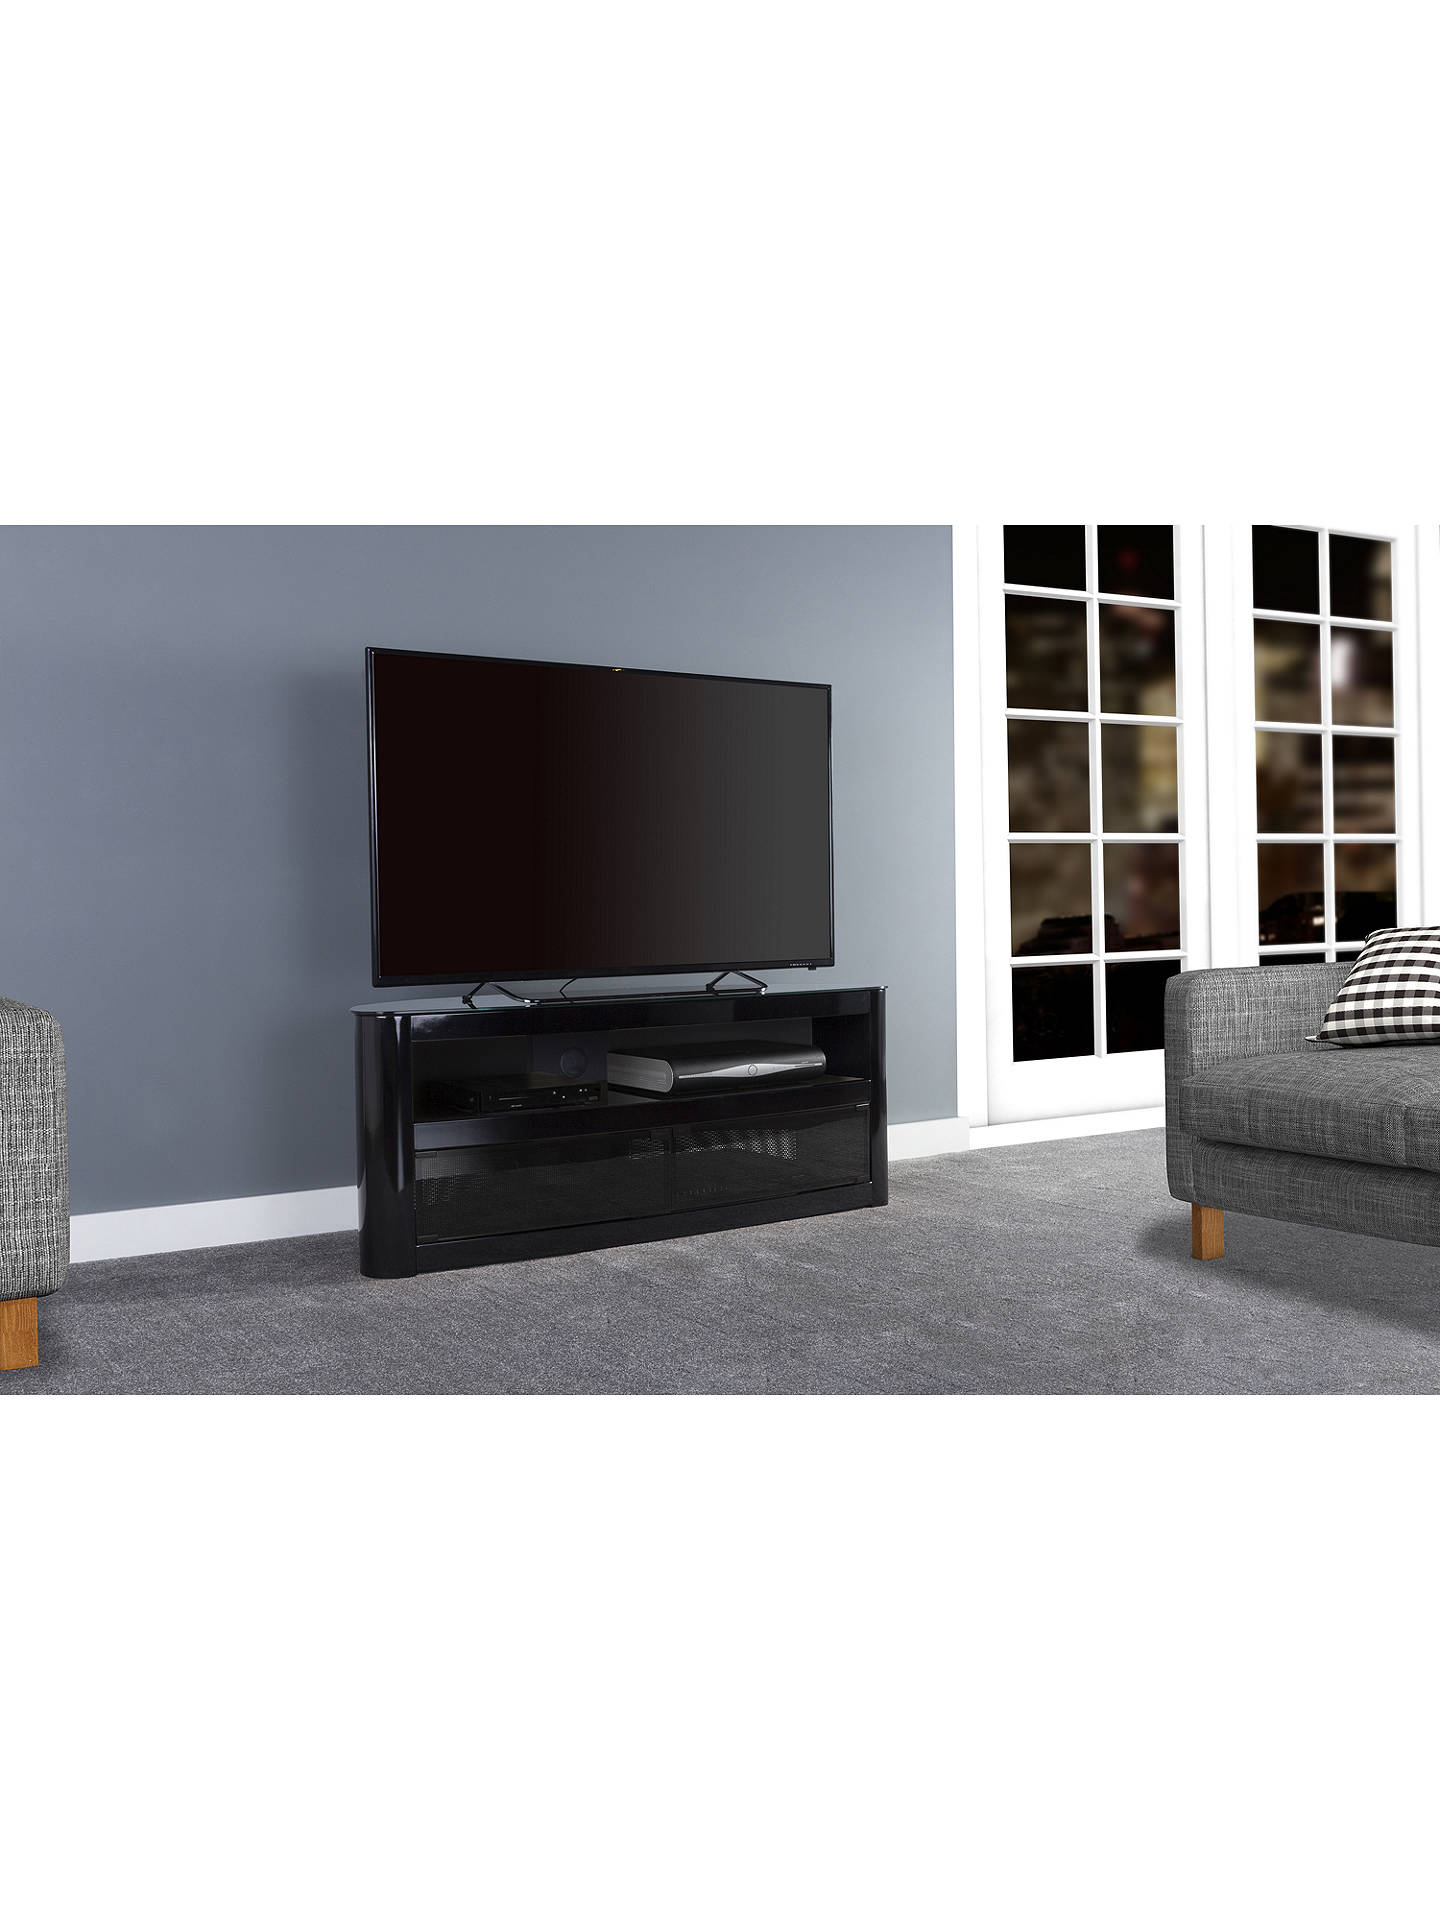 "BuyAVF Affinity Premium Burghley 1250 TV Stand For TVs Up To 65"", Black Online at johnlewis.com"